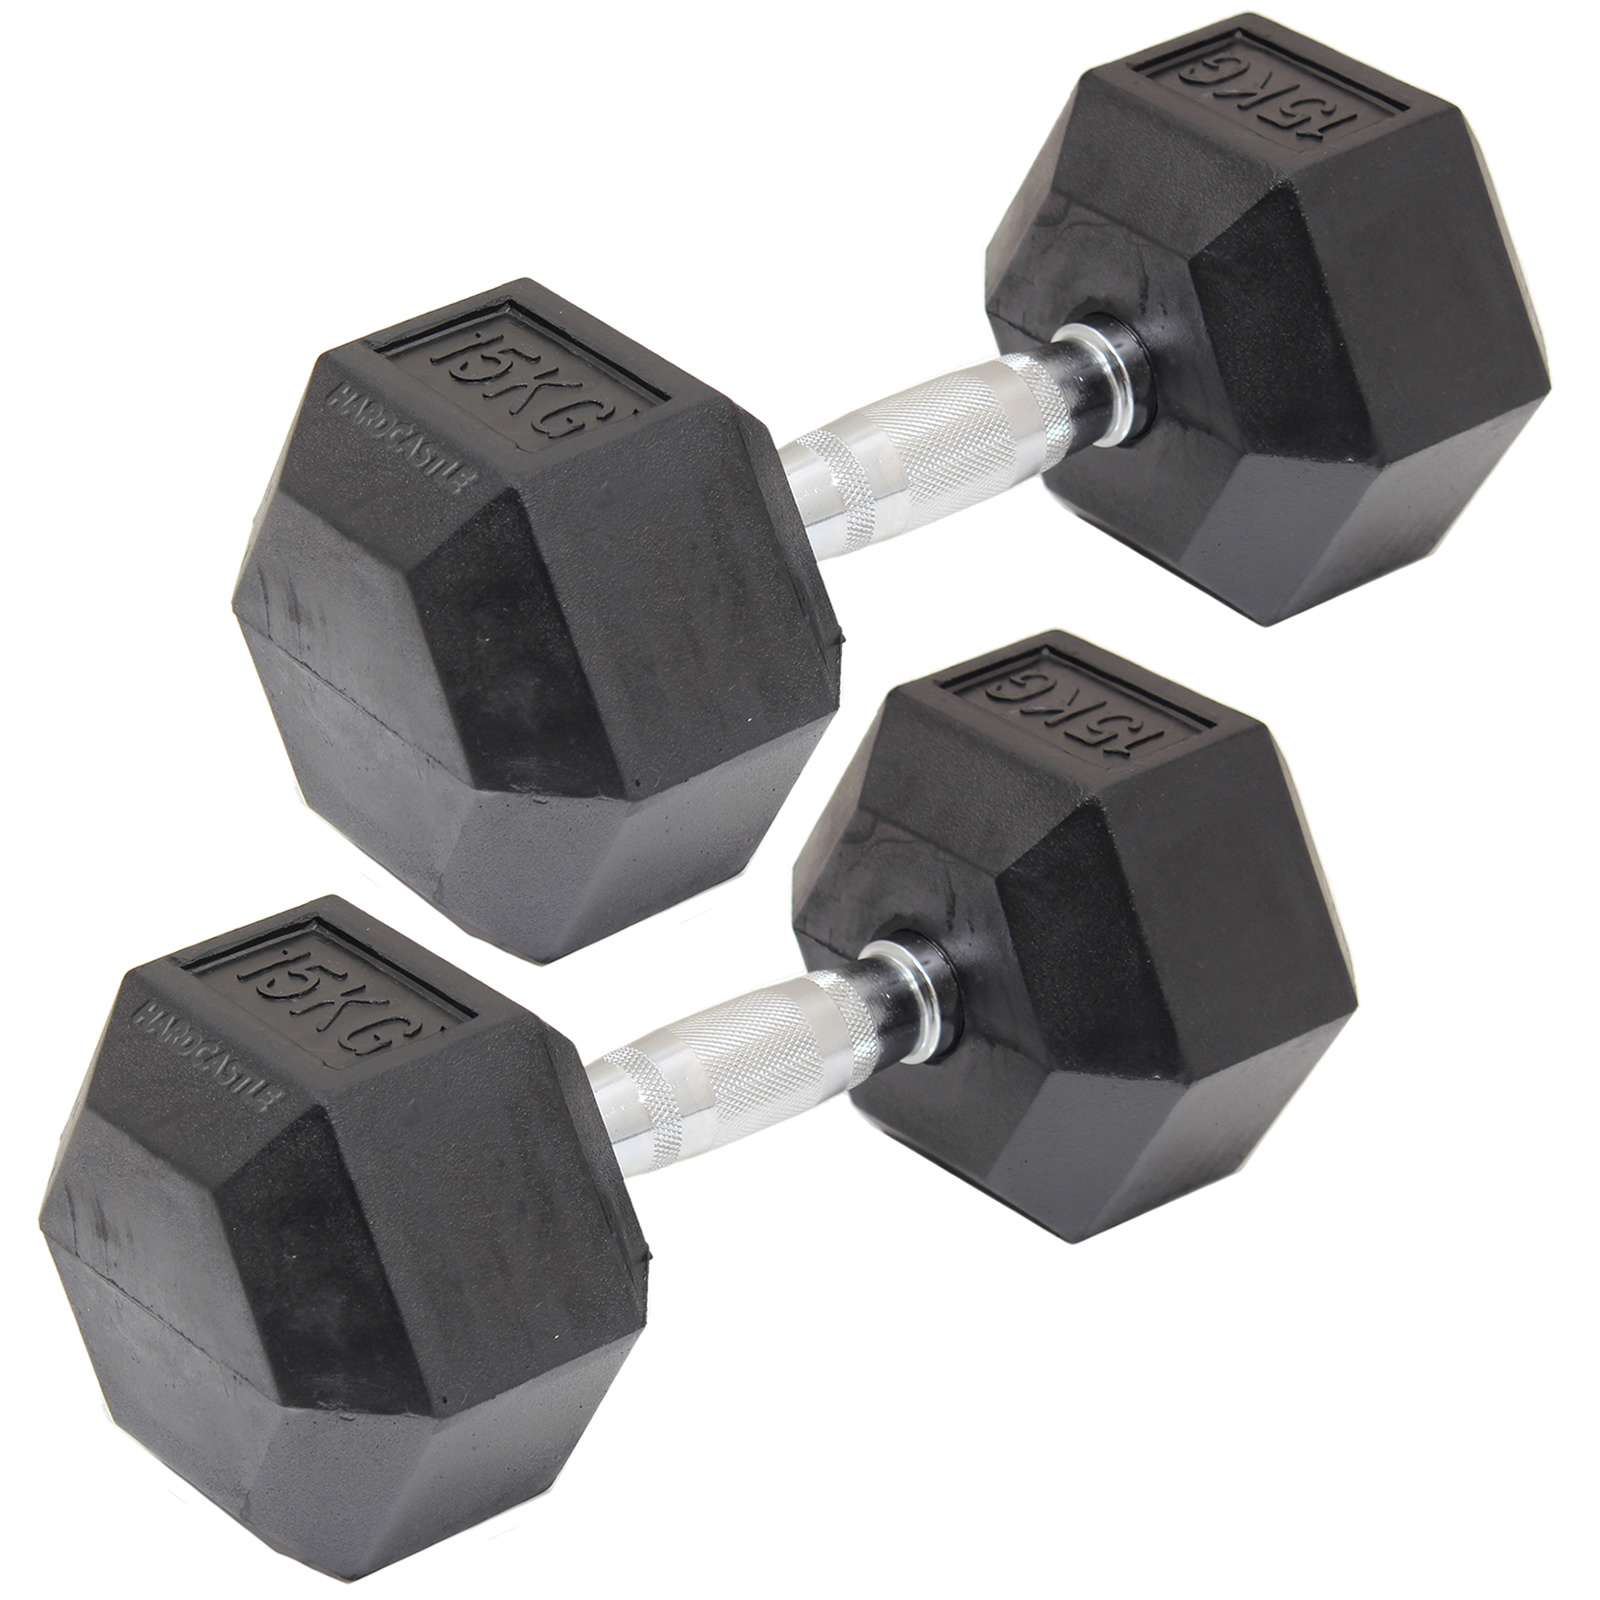 RUBBER-DUMBBELL-HEX-WEIGHTS-BICEPS-WORKOUT-TRAINING-2-60KG-DUMBELLS-GYM-FITNESS